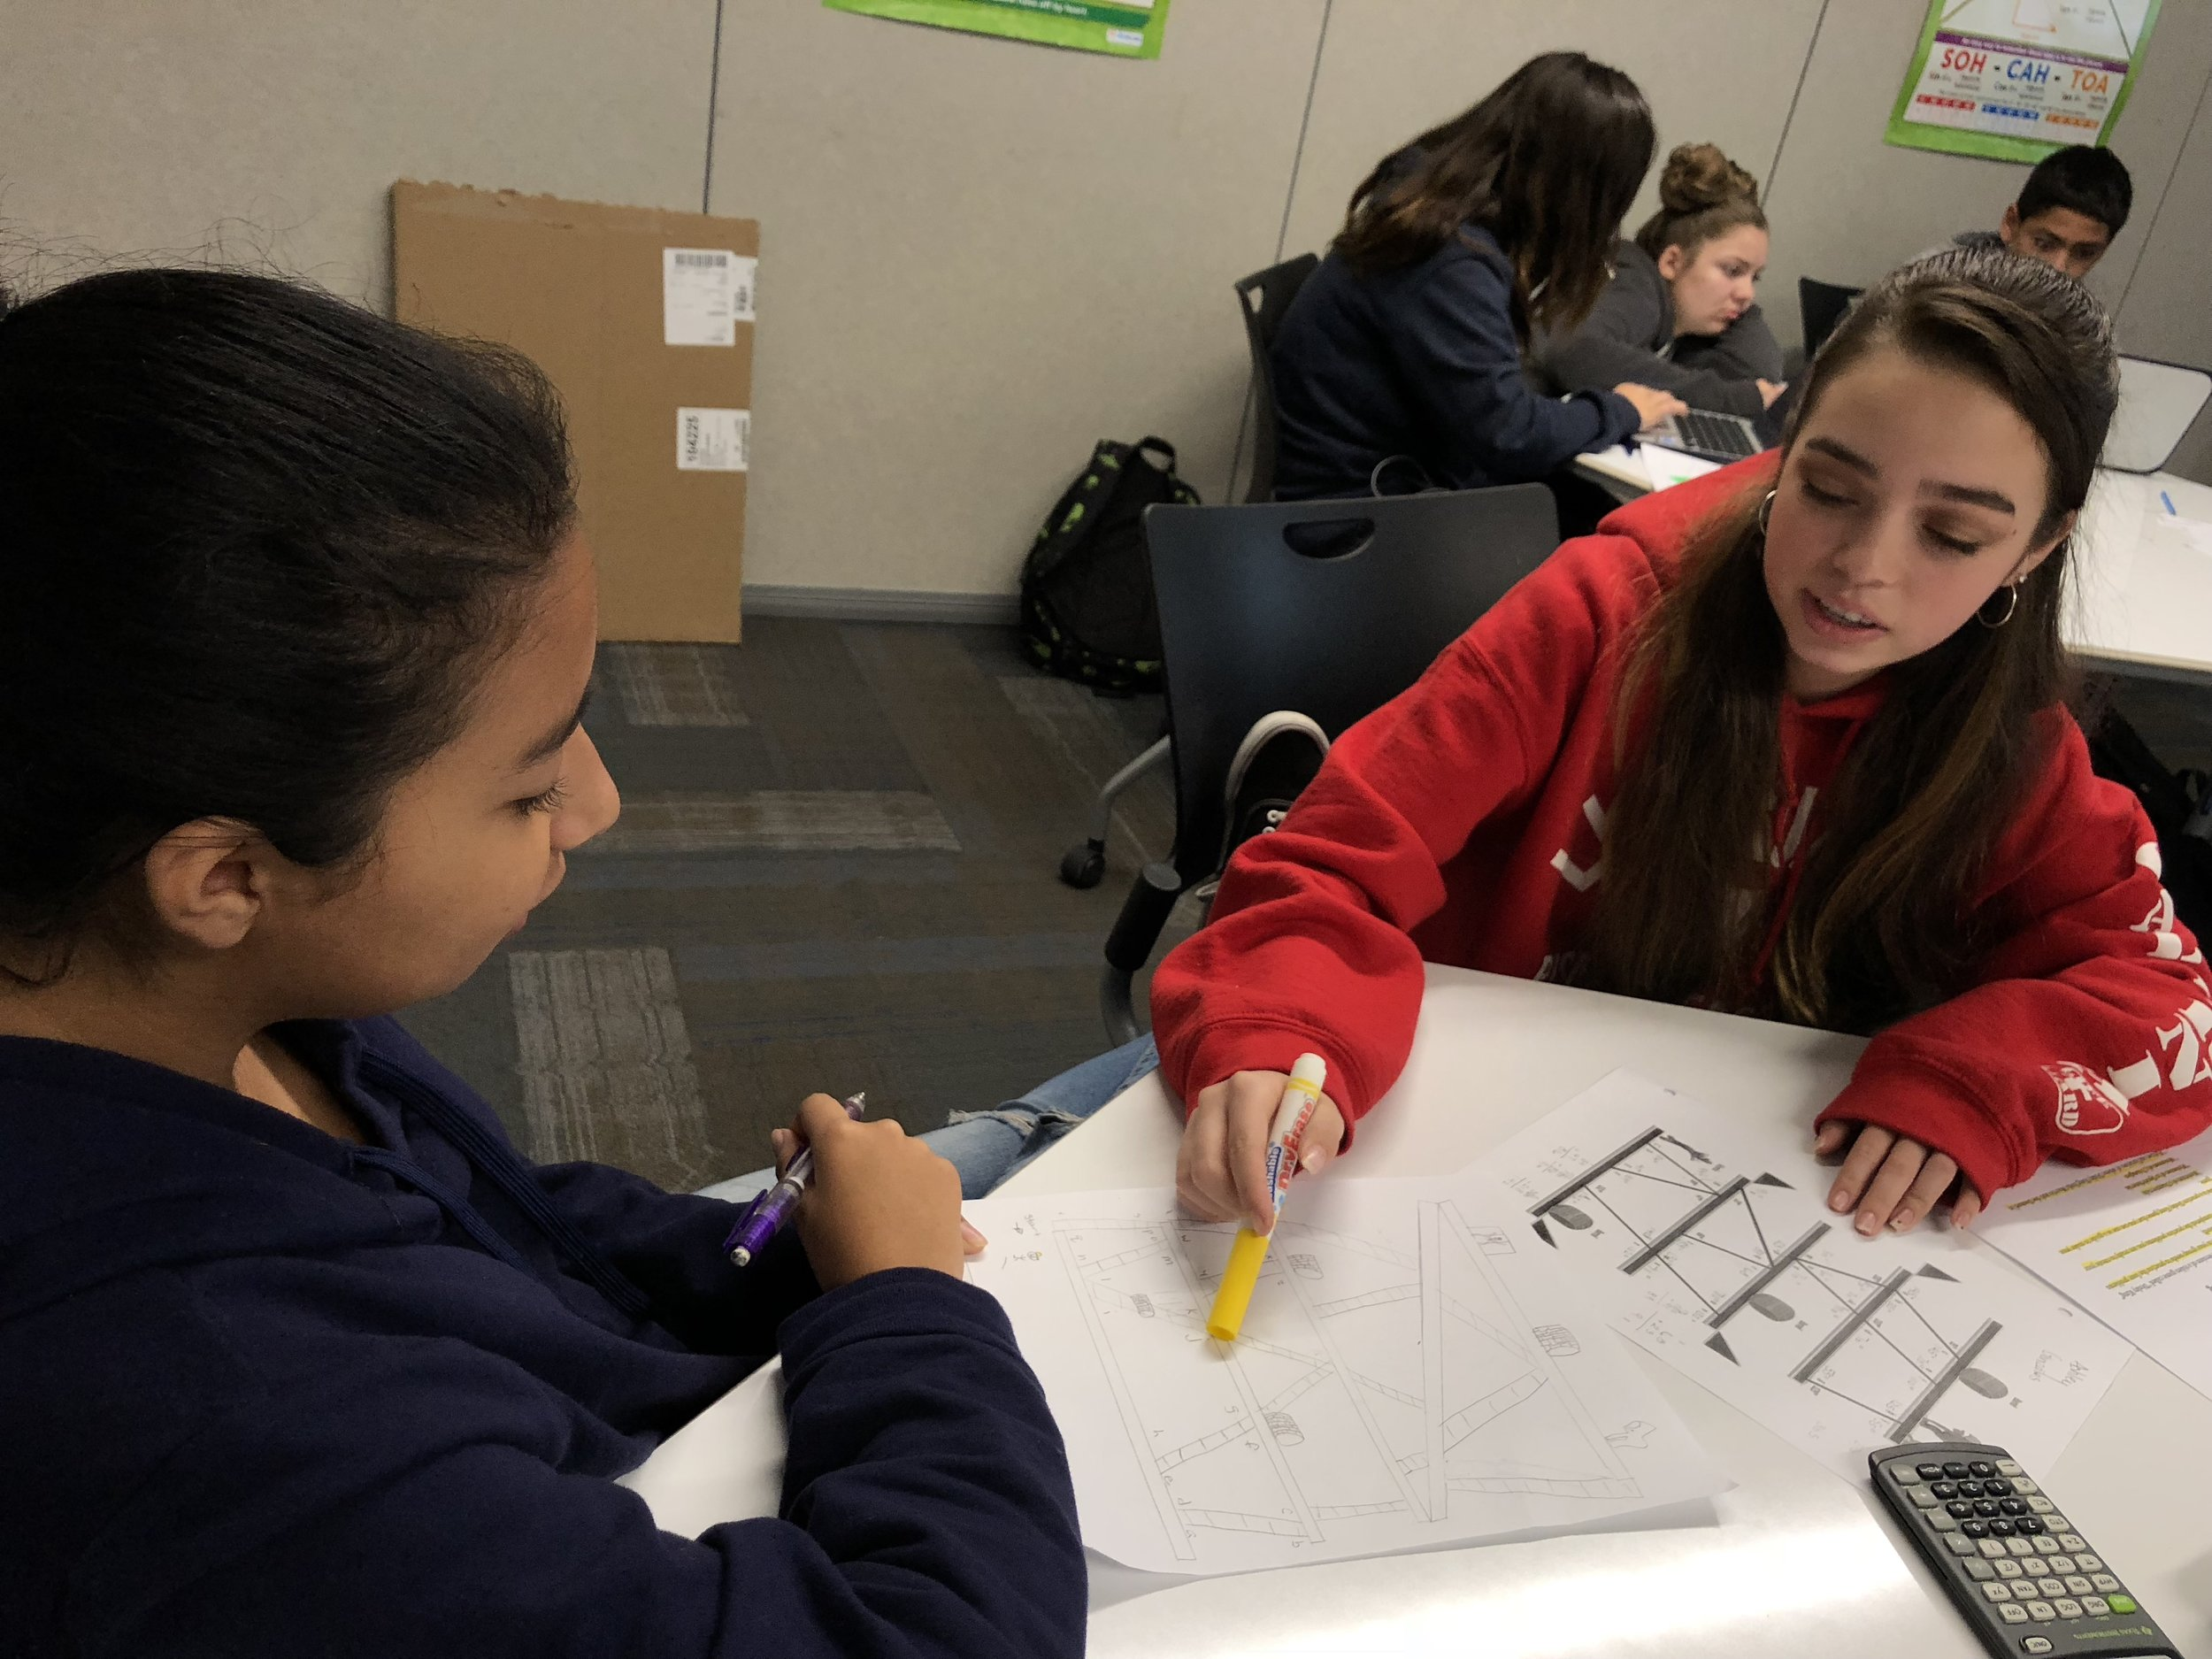 Students working on math assignment